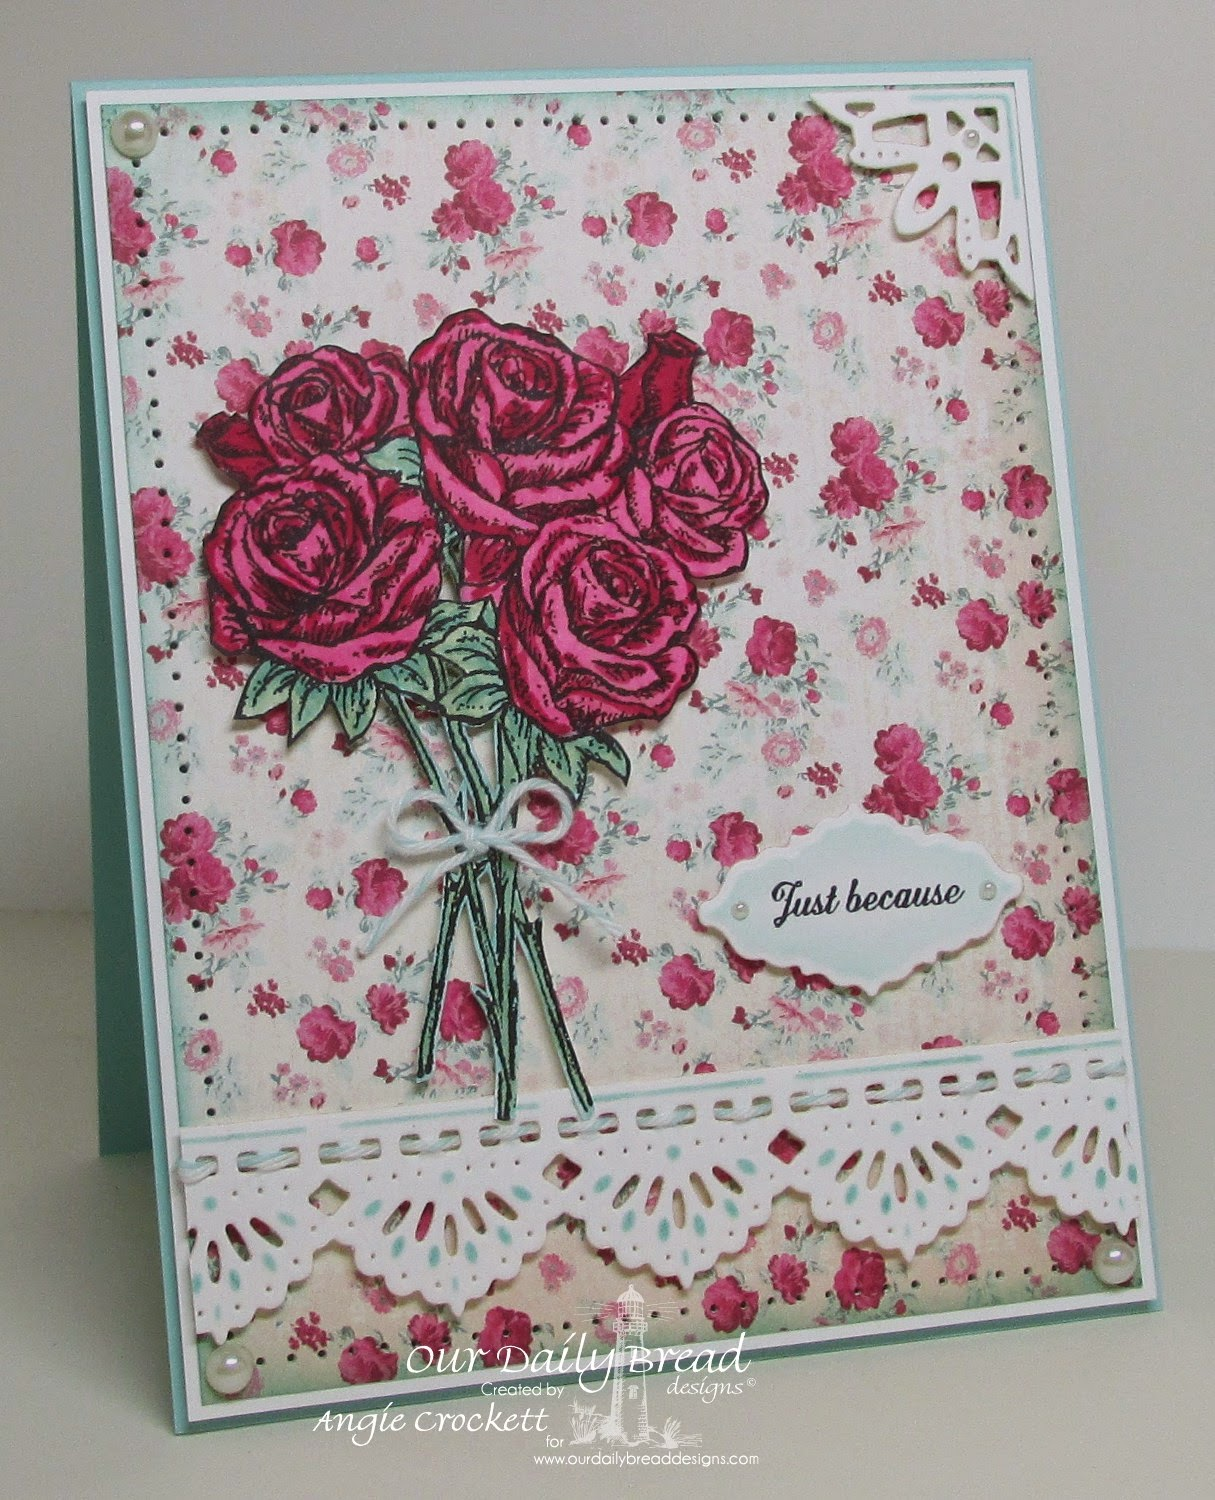 ODBD Rose Bouquet, Ornate Border Sentiments, ODBD Custom Ornate Borders and Flowers Dies, ODBD Custom Beautiful Borders Dies, Card Designer Angie Crockett